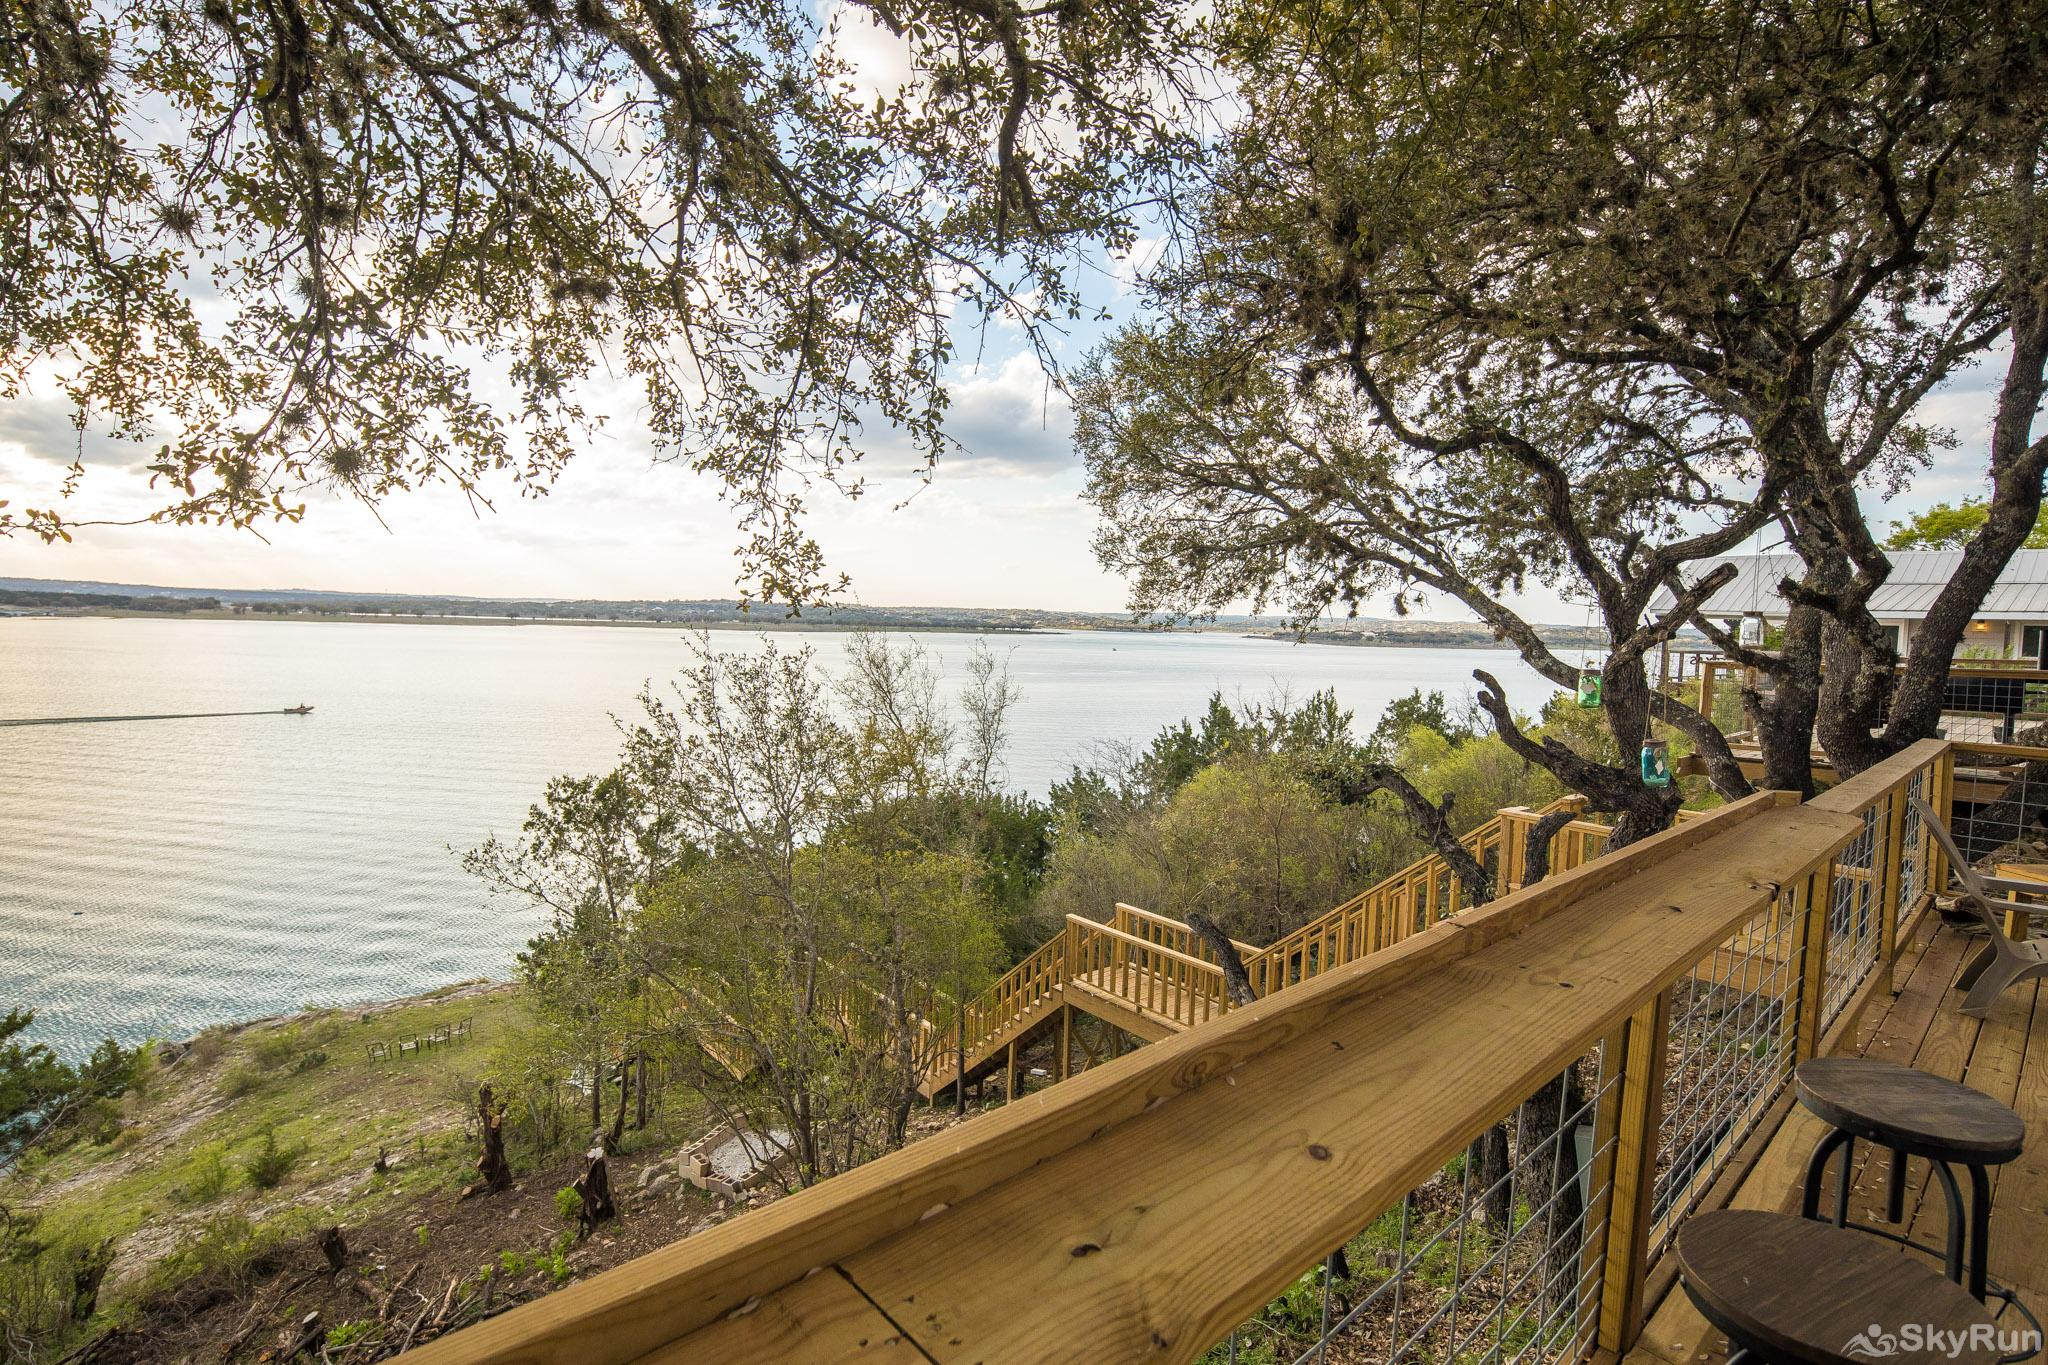 CLIFF HOUSE AT CANYON LAKE Rent a boat and explore Canyon Lake to its fullest